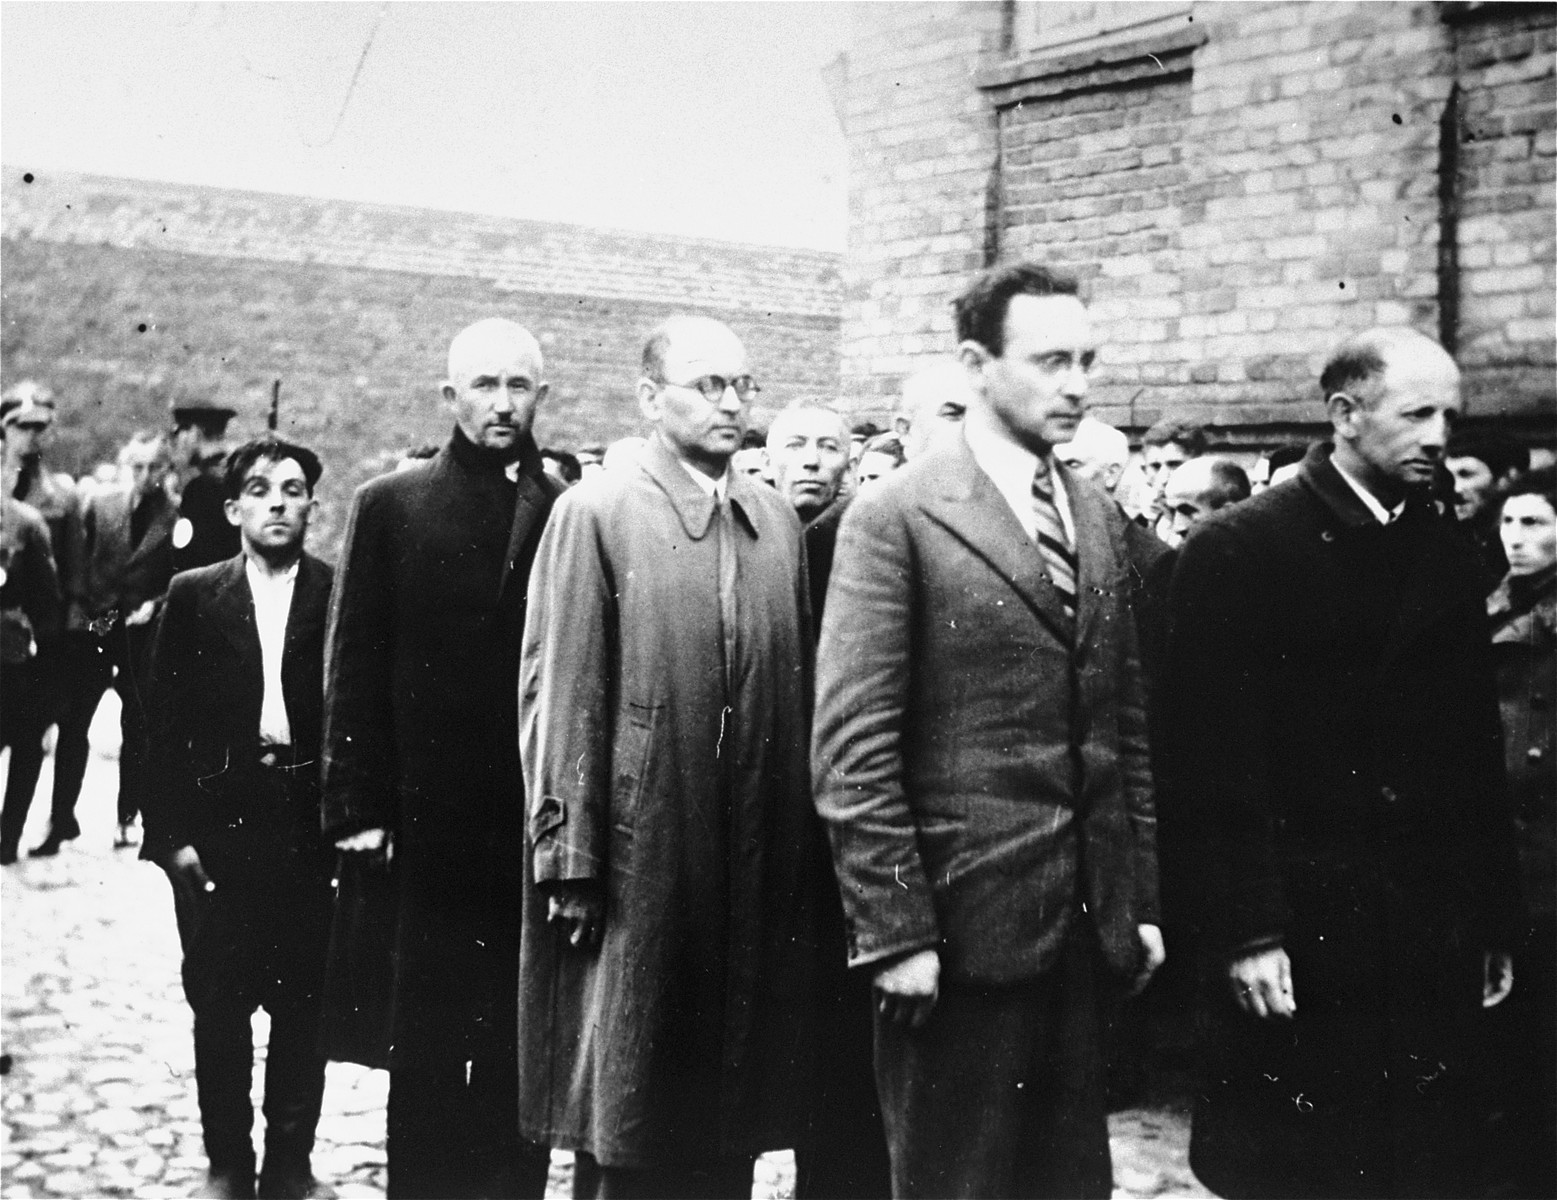 Jewish men are lined-up in a courtyard during an action in Plonsk.